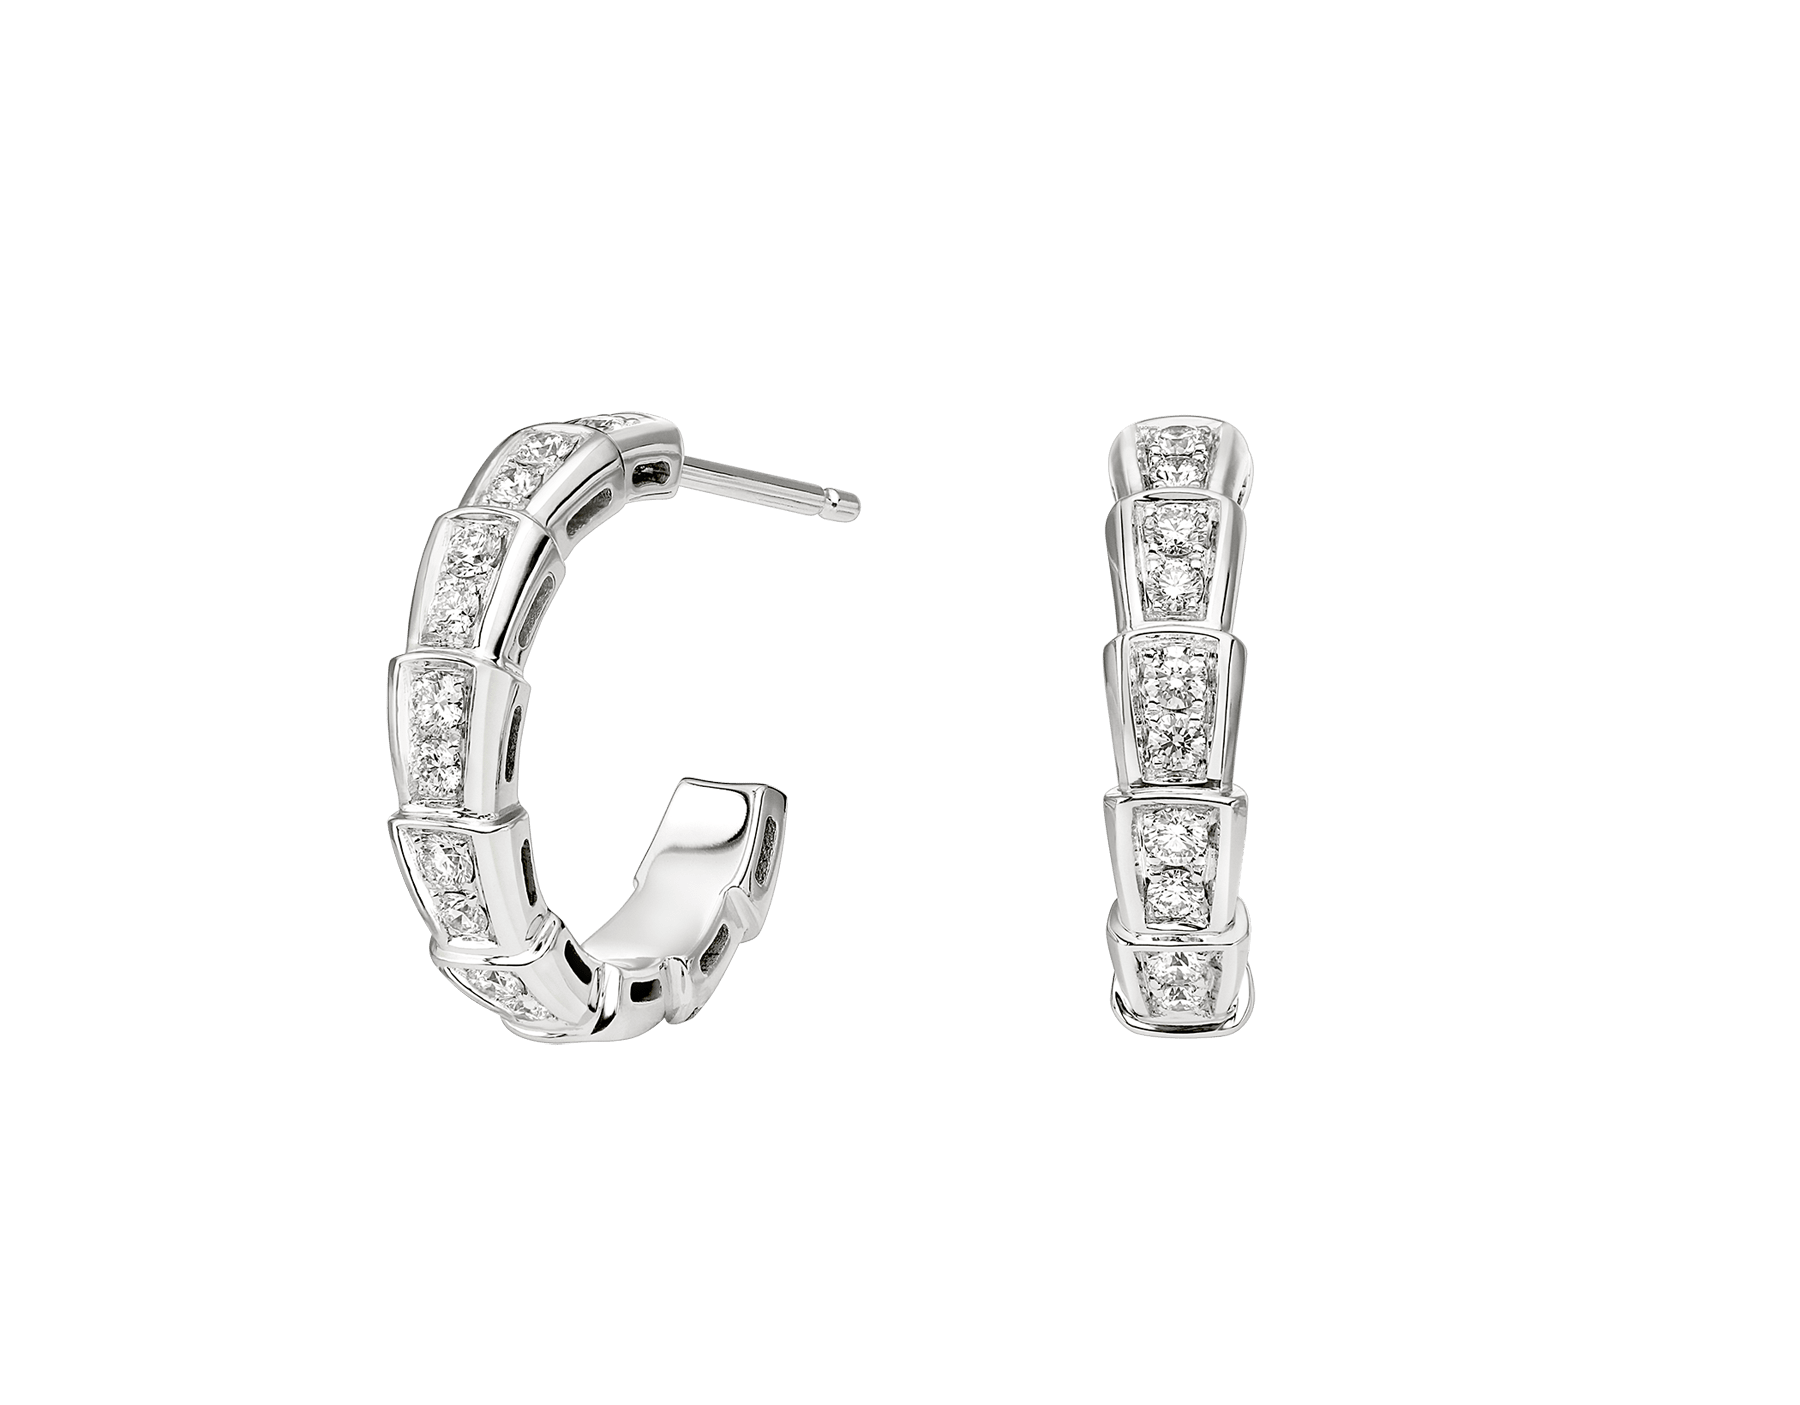 Serpenti Viper 18 kt white gold earrings set with pavé diamonds. 356172 image 1